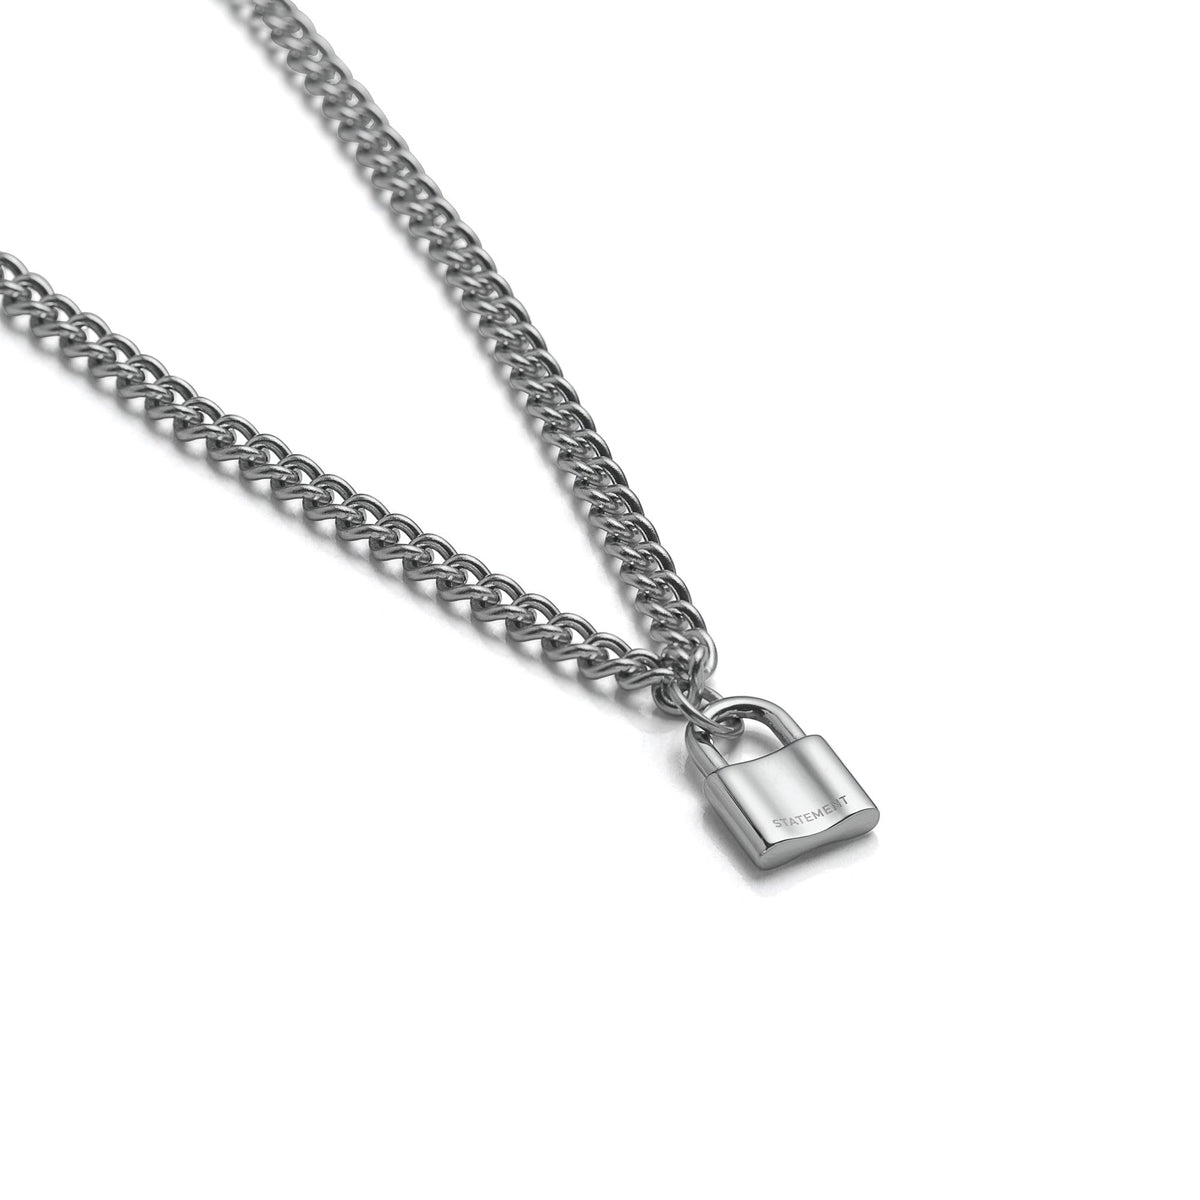 Mini Padlock Mens Necklace by Statement Collective_01